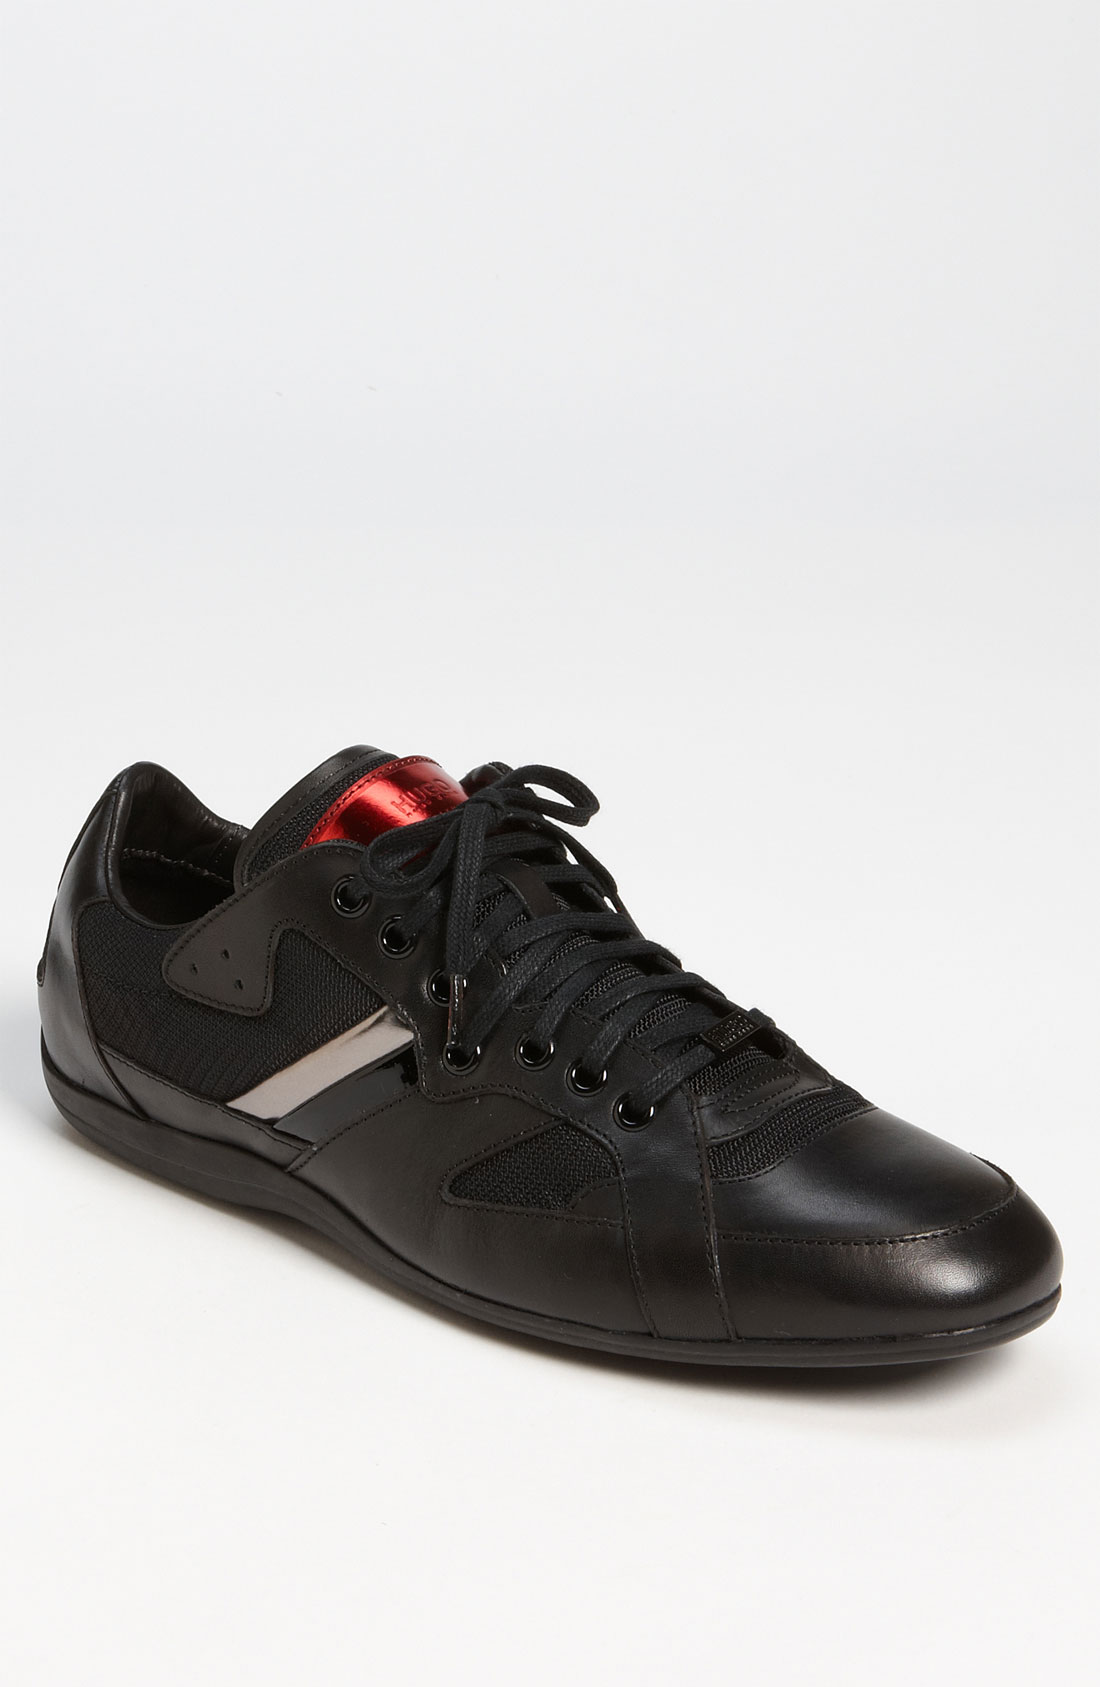 hugo boss black theto sneaker in black for men lyst. Black Bedroom Furniture Sets. Home Design Ideas